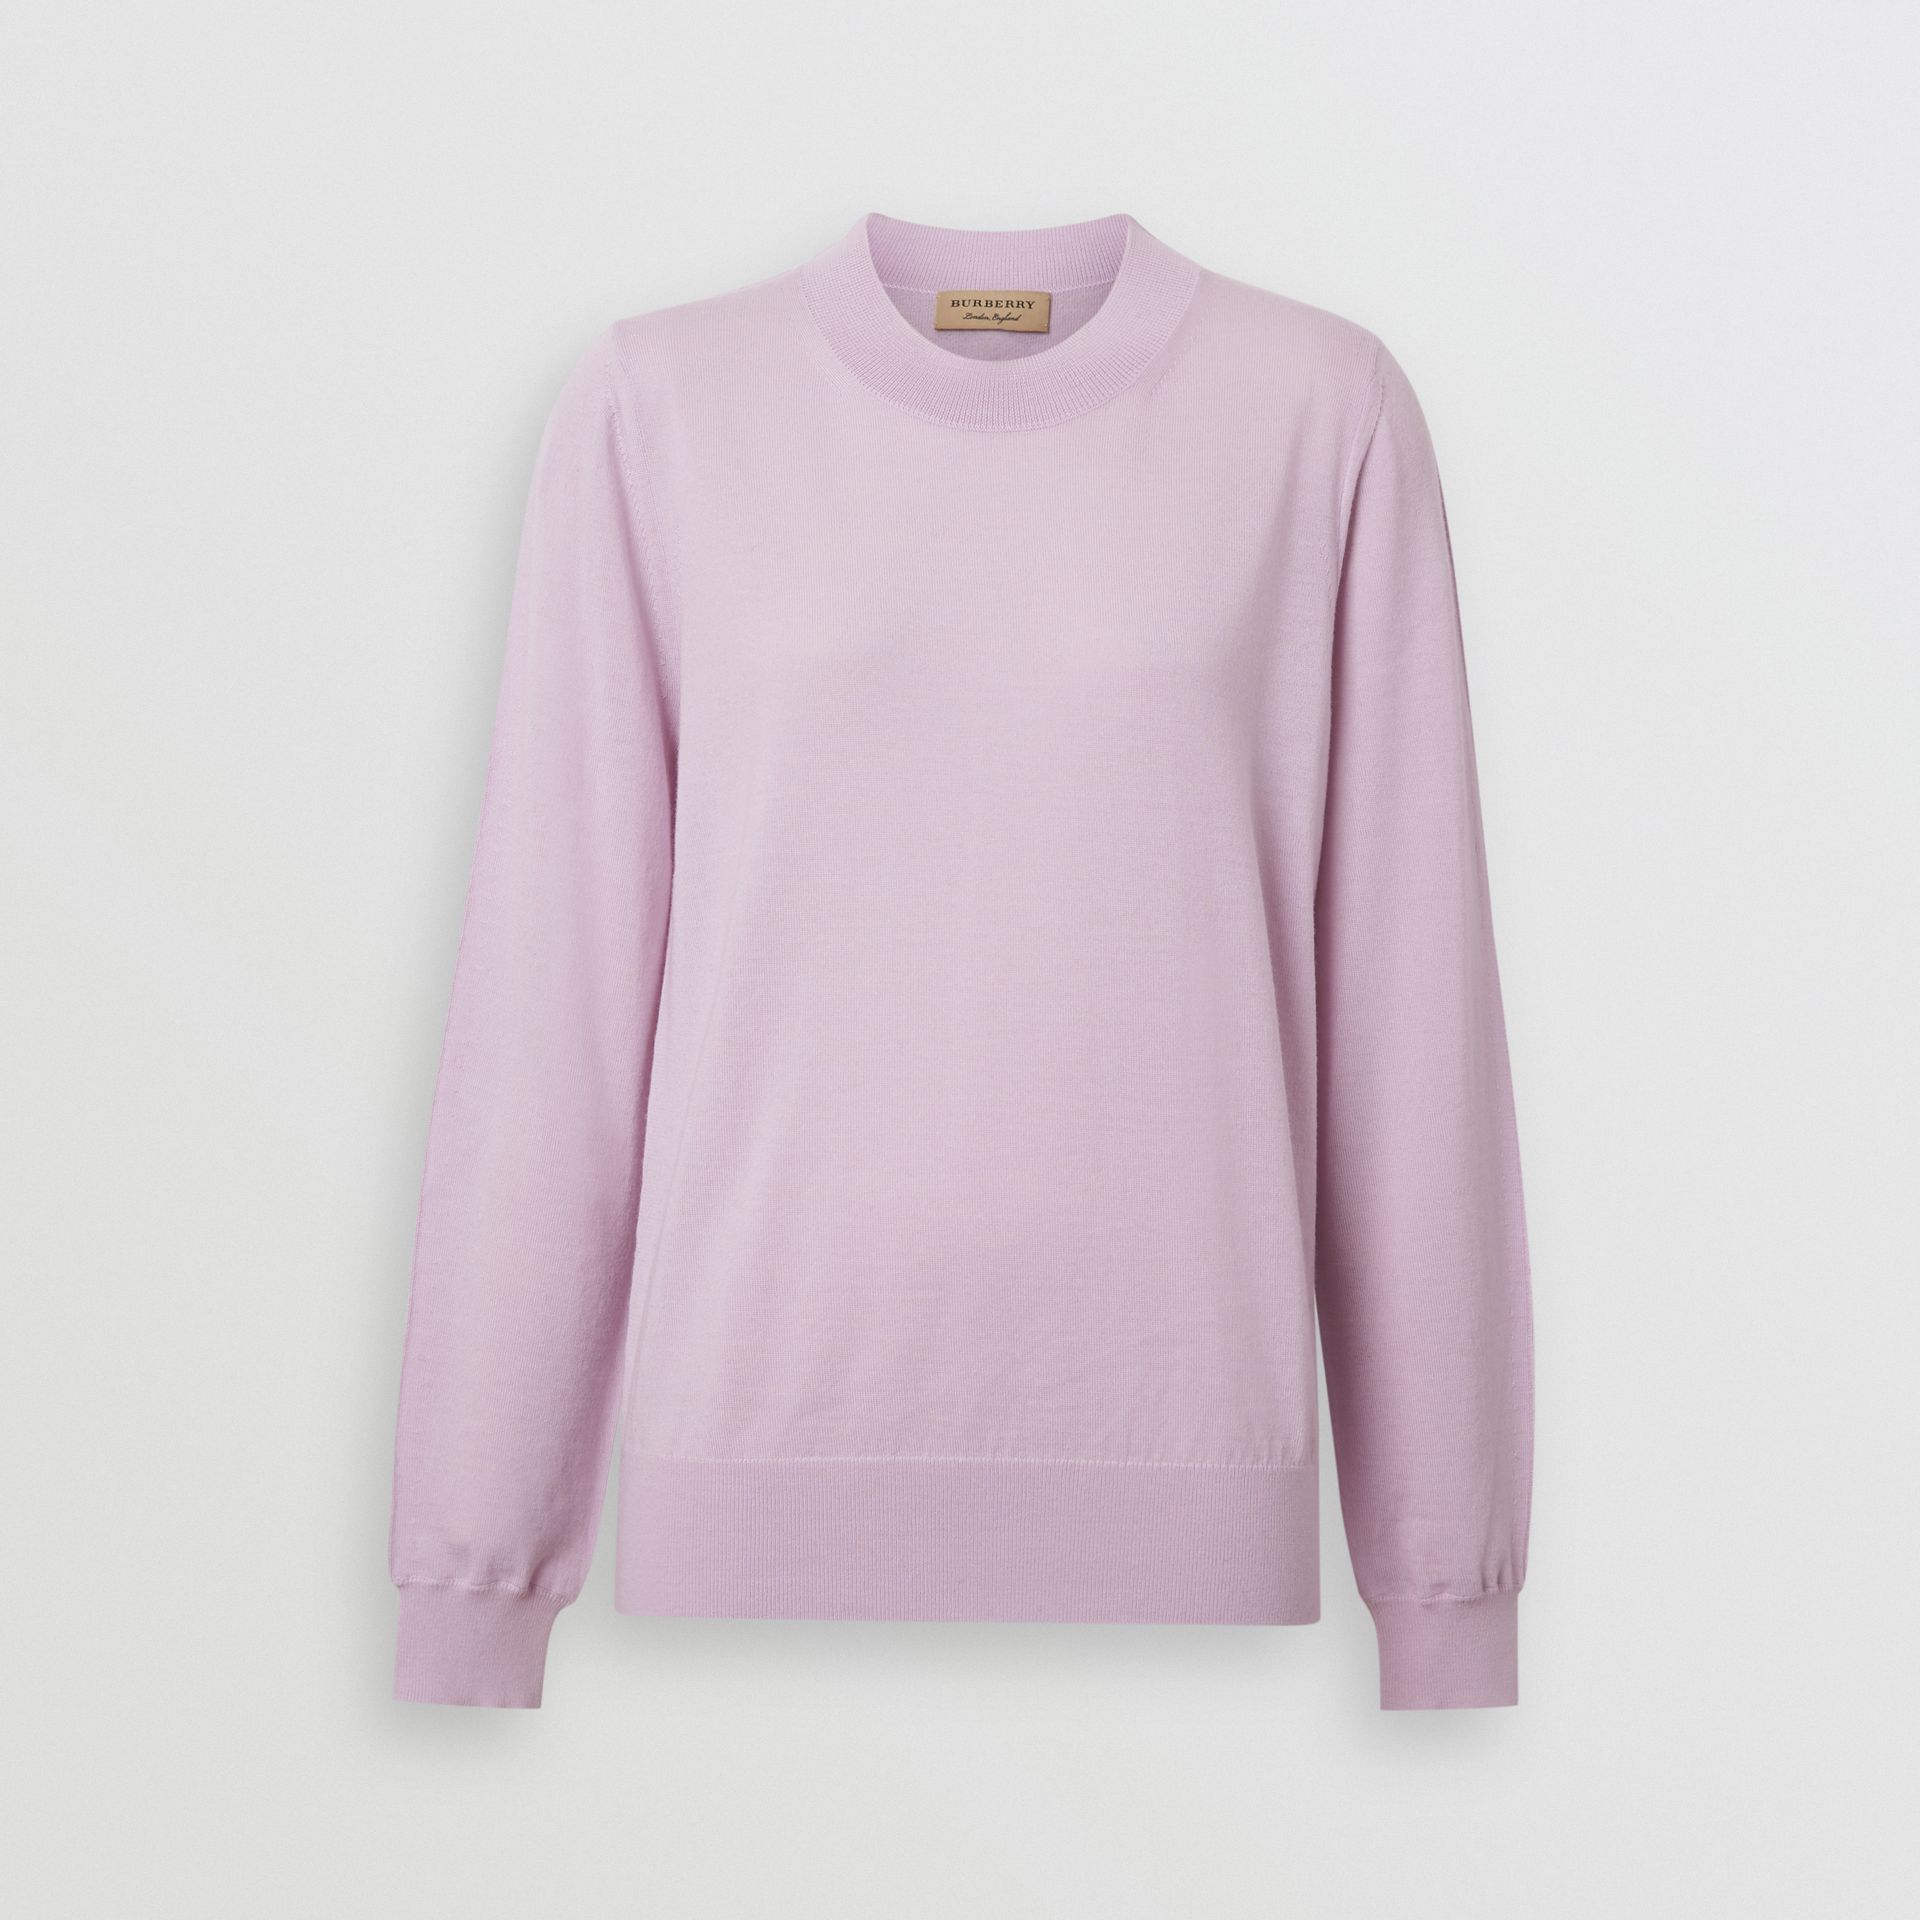 Logo Detail Merino Wool Sweater in Pale Heather - Women | Burberry - gallery image 3